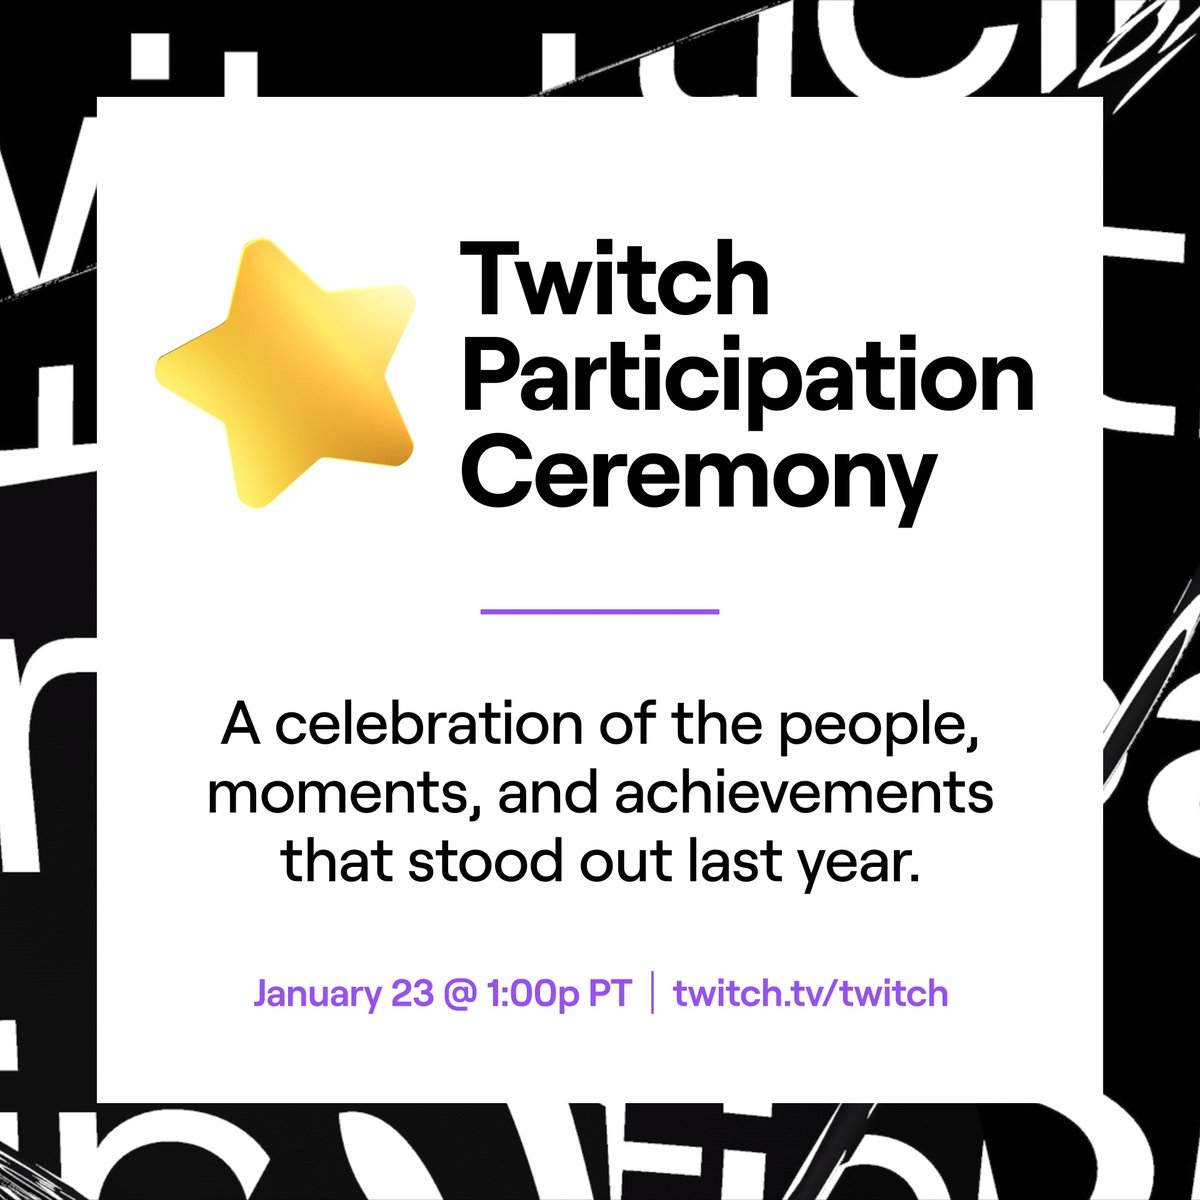 We've got gold stars for some of the most notable people, moments and achievements of last year during the Twitch Participation Ceremony.  Come participate January 23 at 1pm PT on